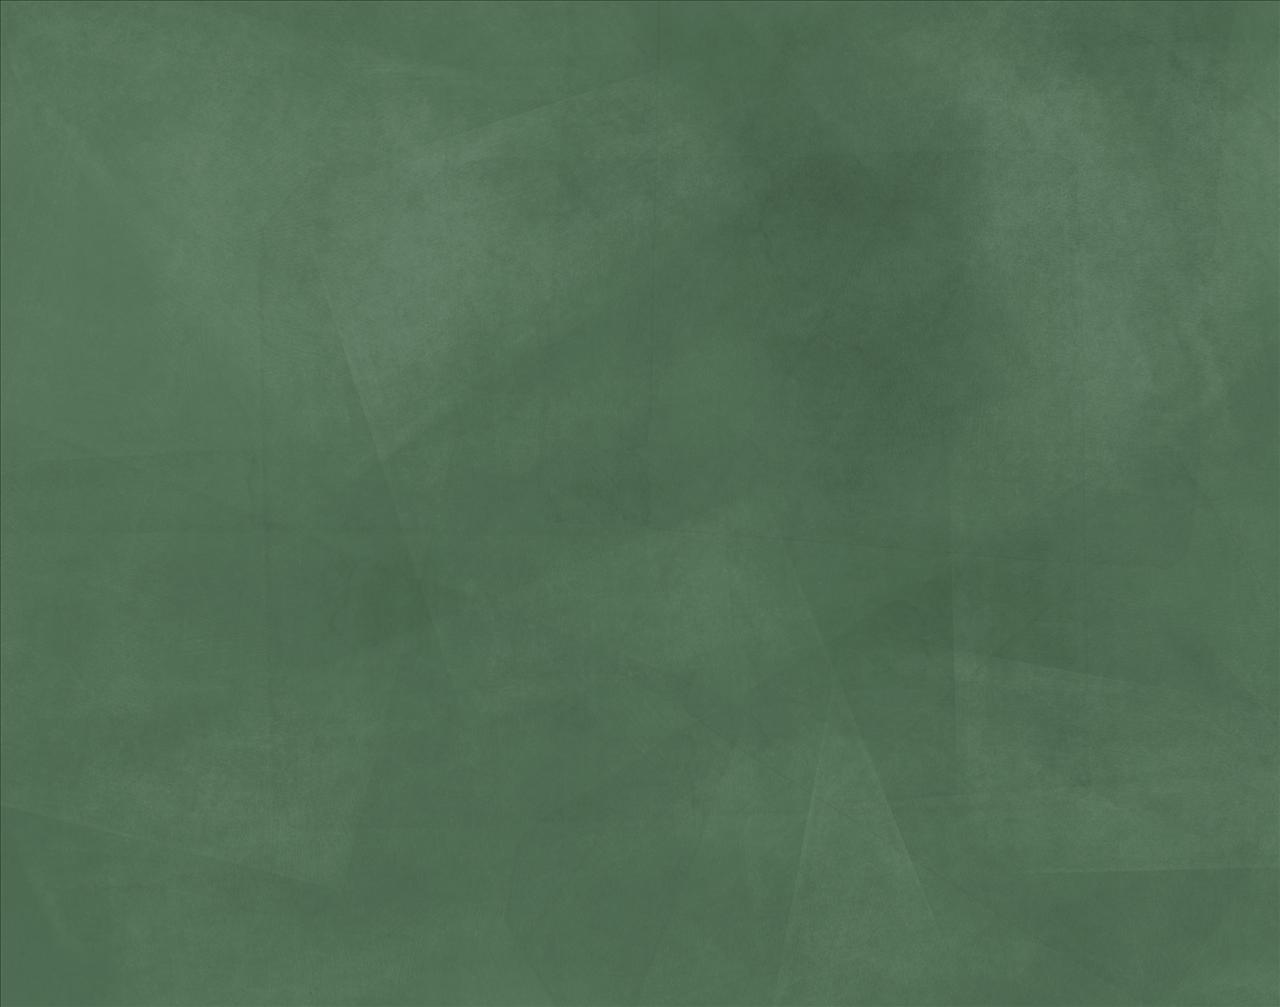 green chalkboard background hq free download 10954